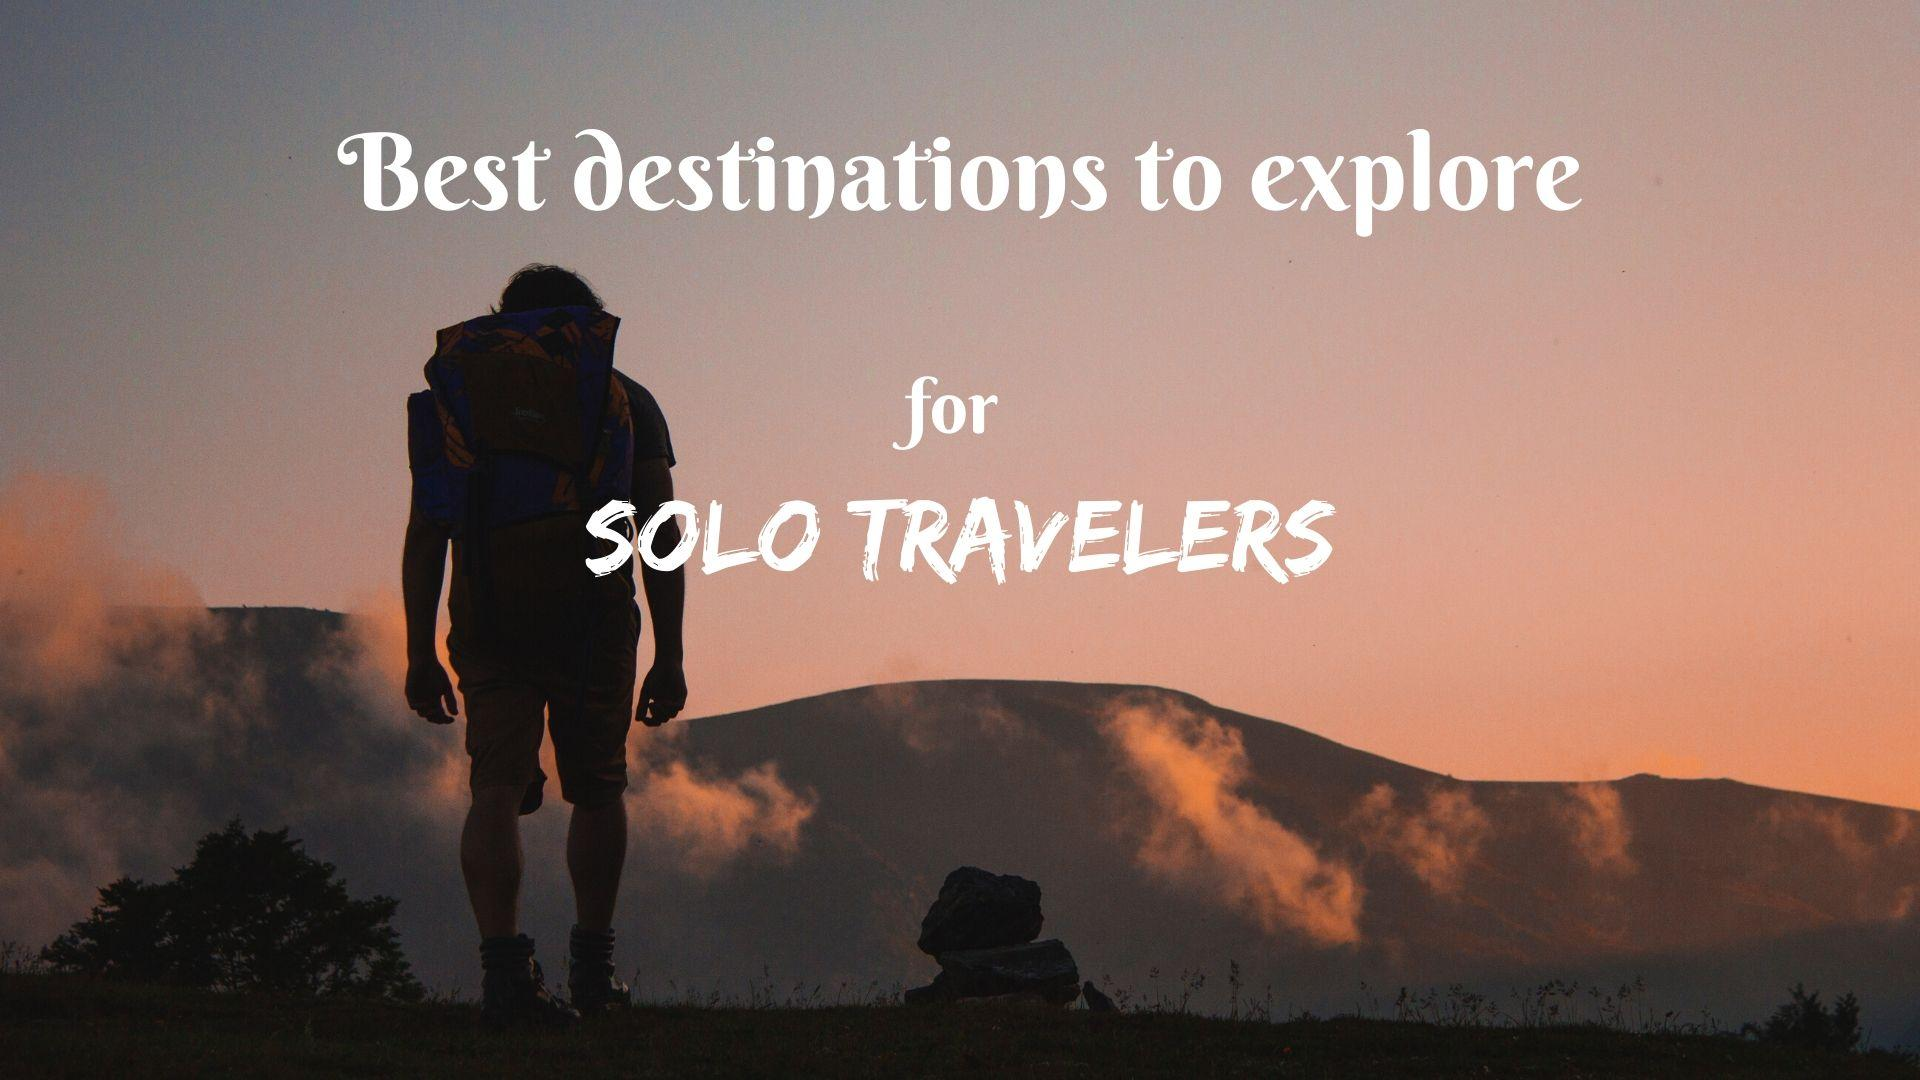 Best destinations to explore for solo travelers